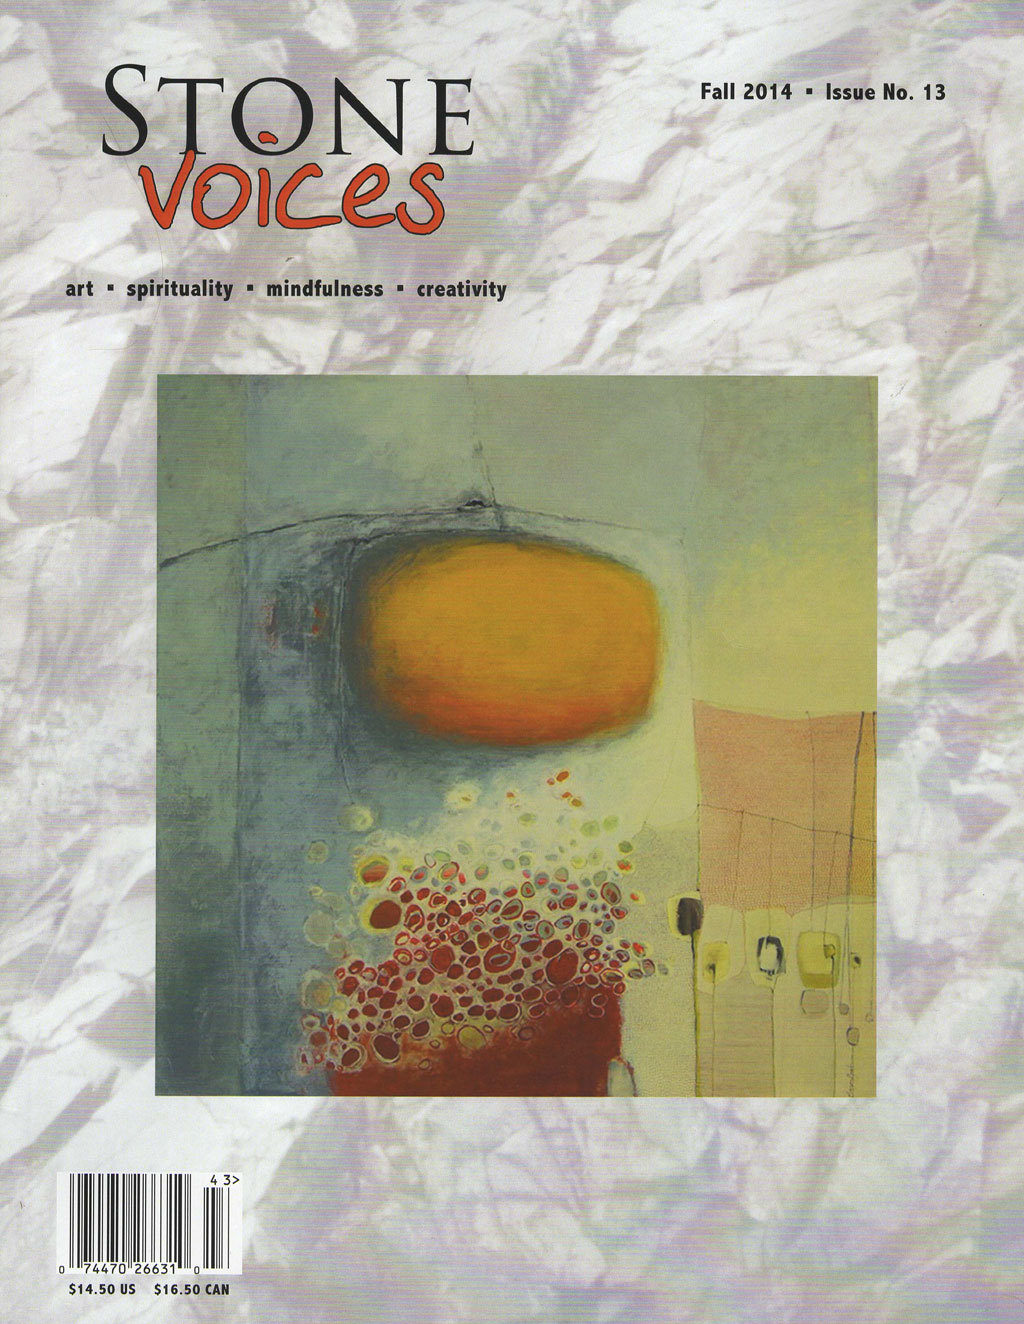 stone-voices-i13-fall-2014.jpg